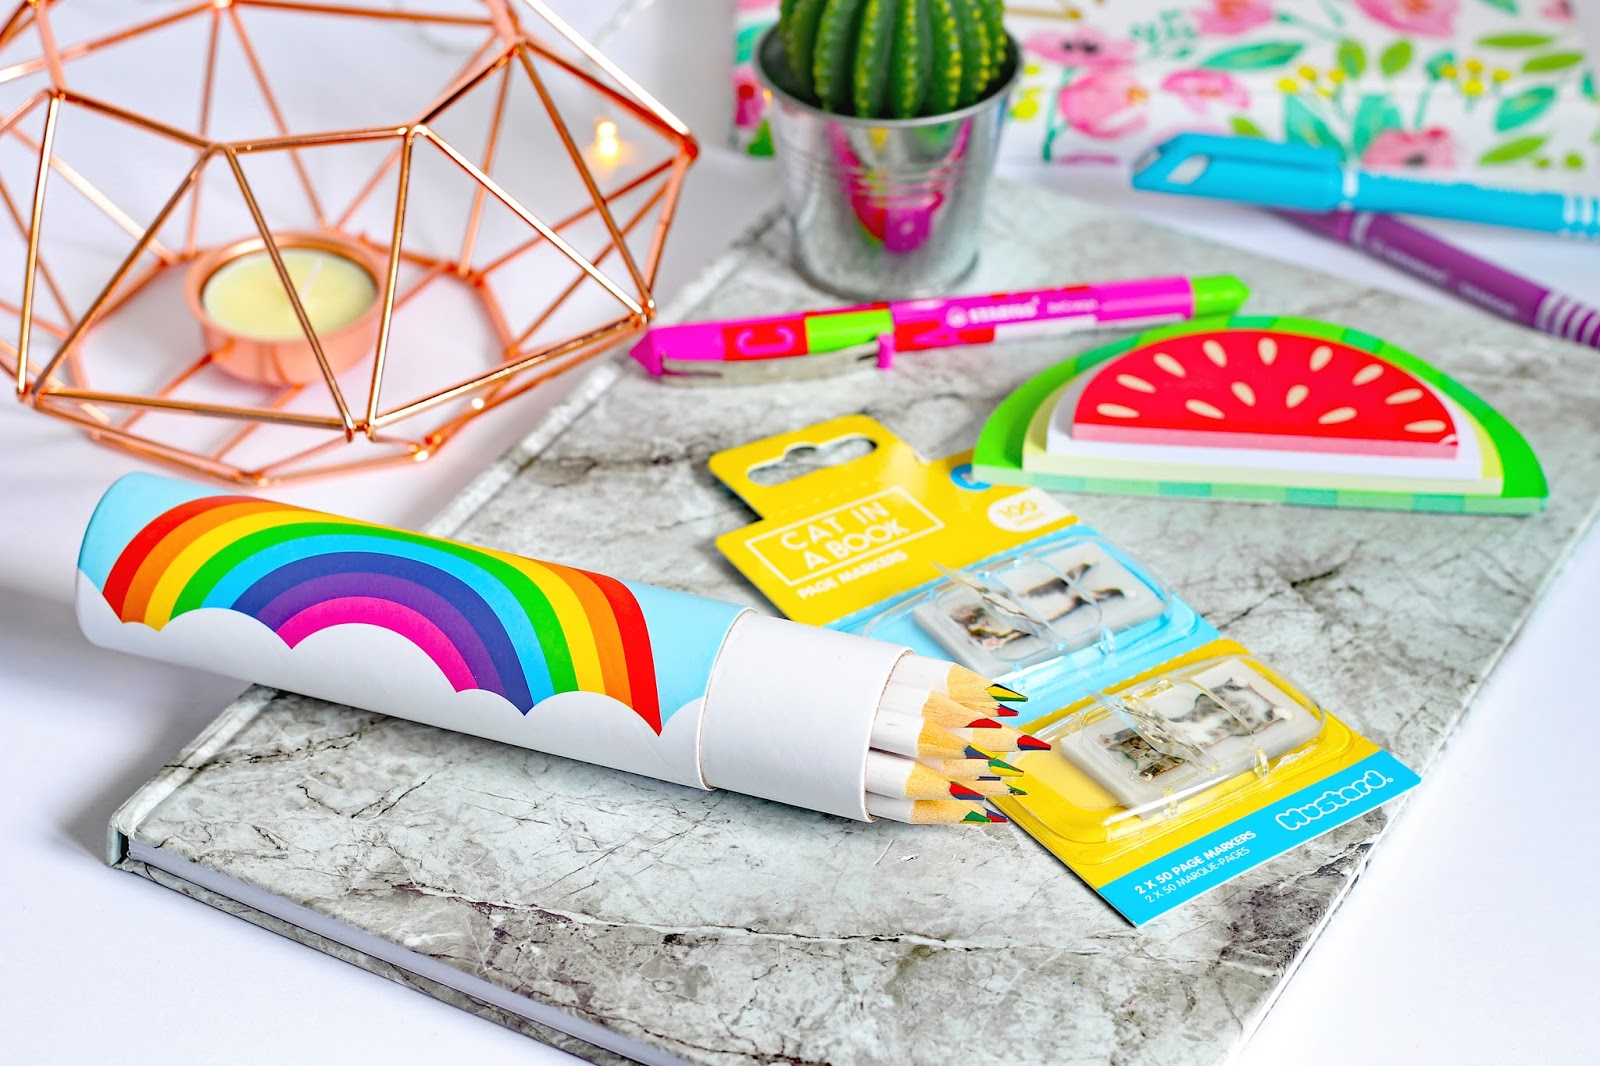 Why I Love Stationery And How It Benefits My Mental Health national week rainbow pencils mustard gifts notebooks love happiness sticky notes pen cute gifts